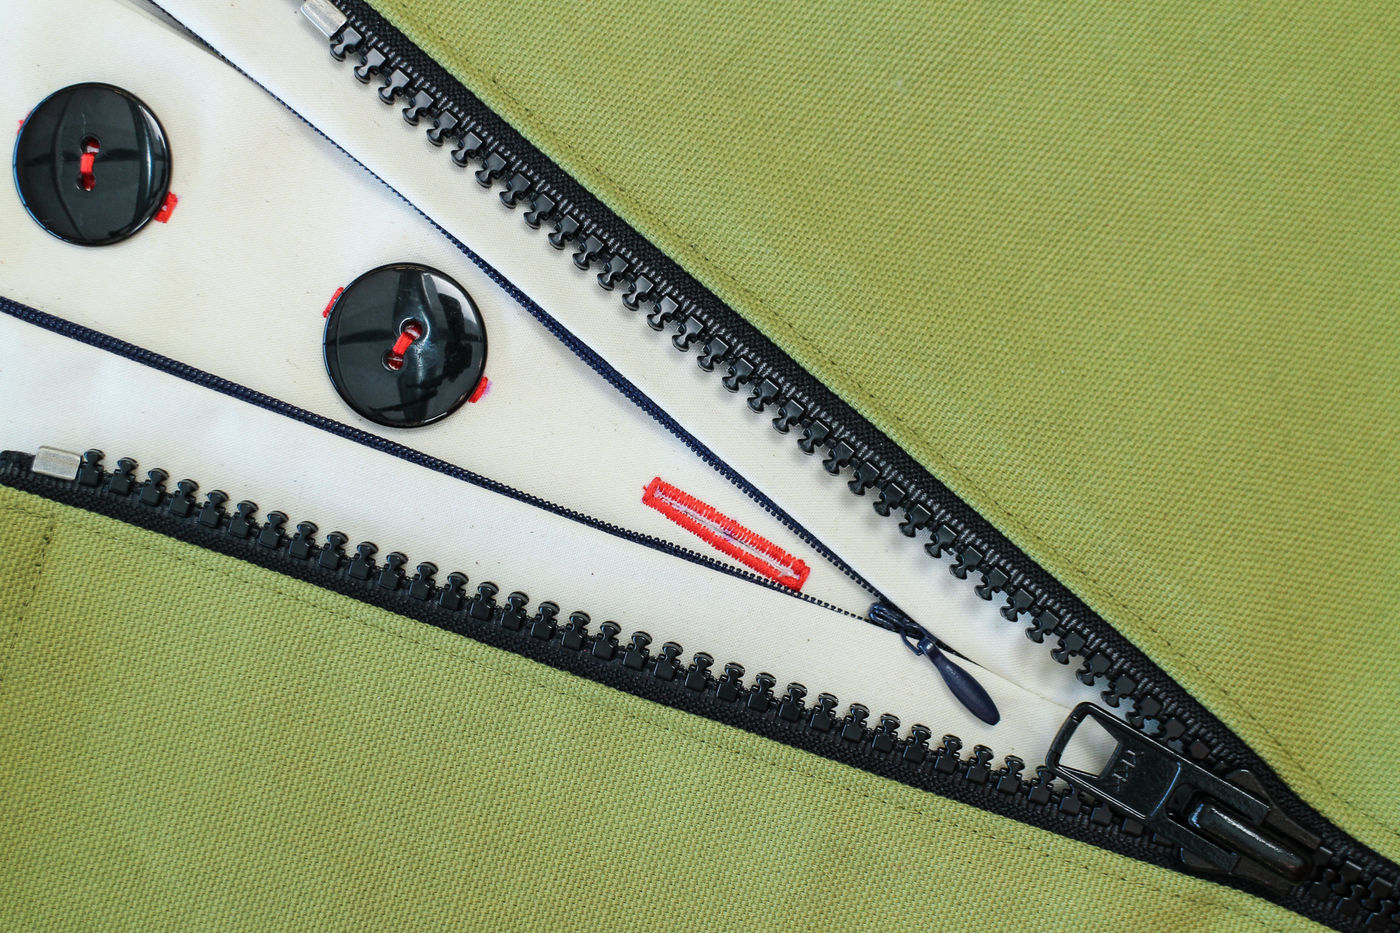 Sewing Zippers and Buttons